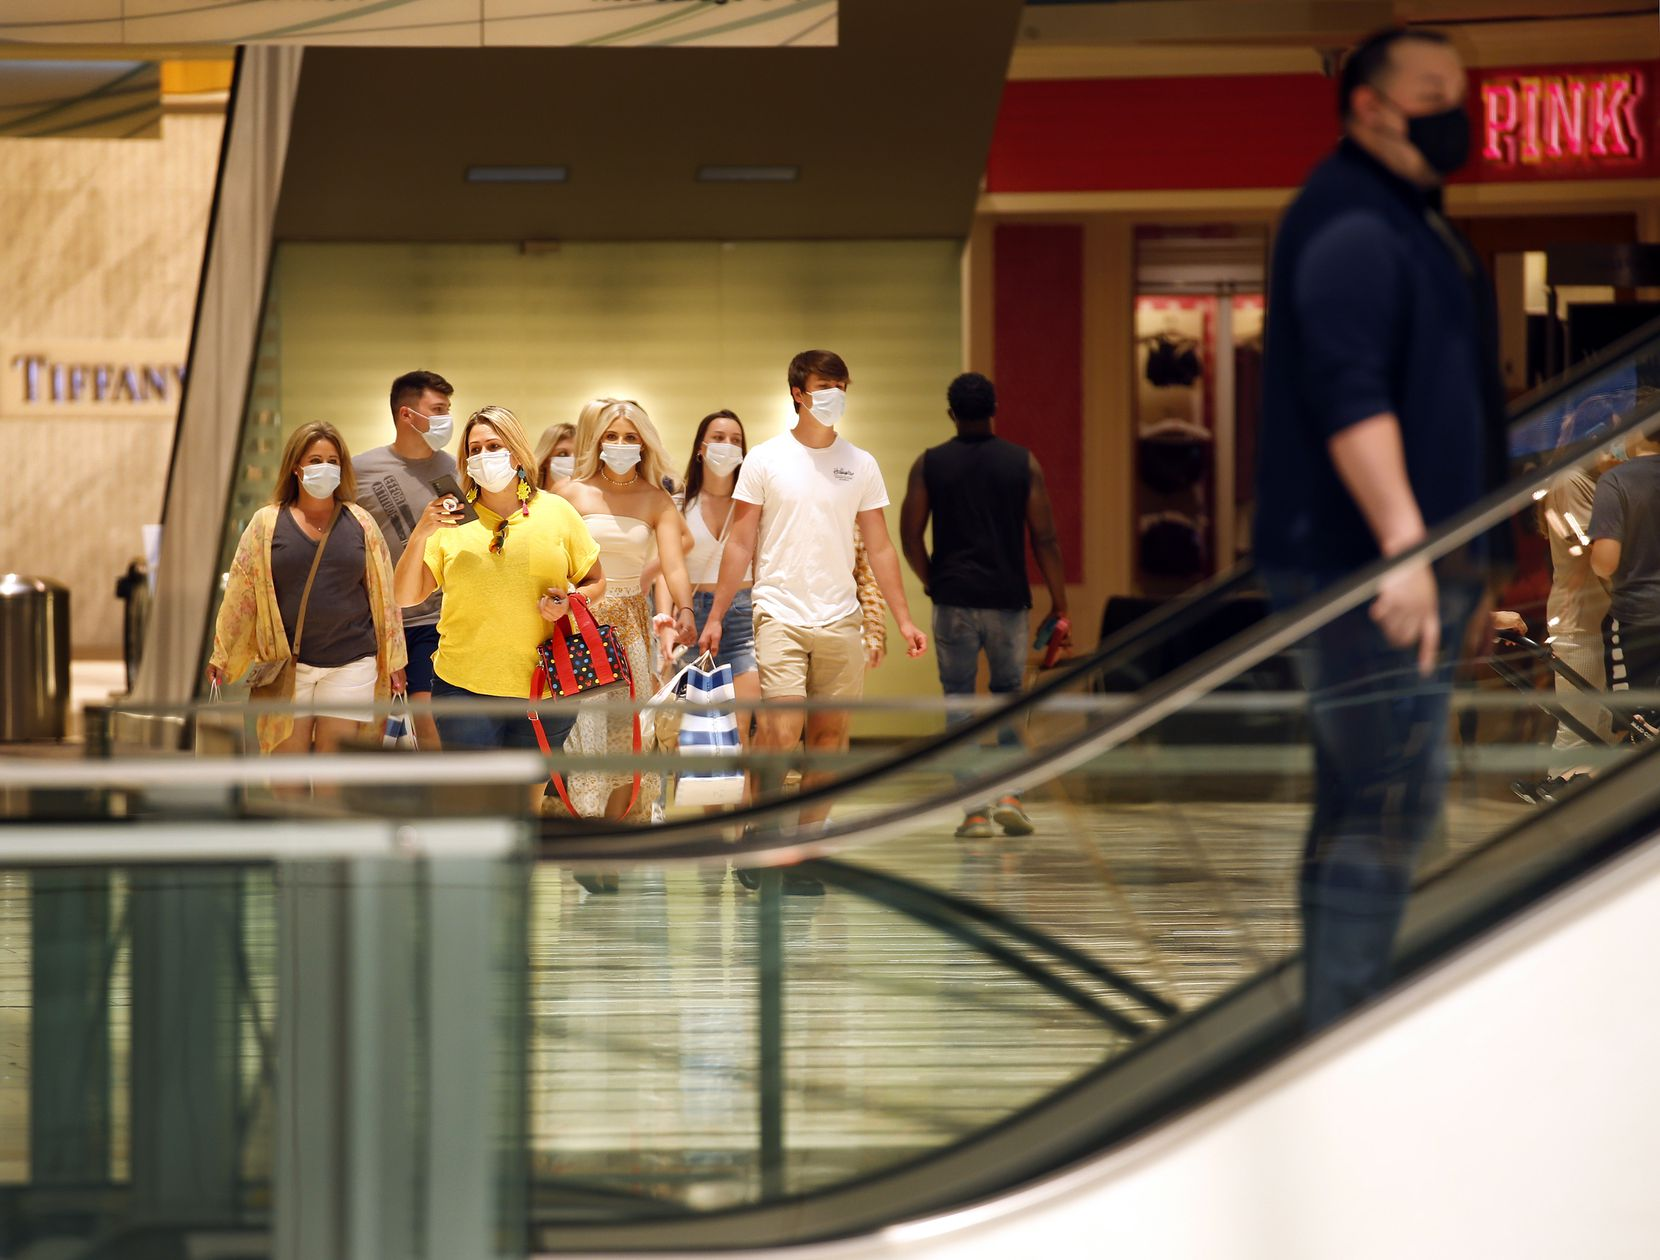 A group of young shoppers from Colorado shopped at the Galleria Dallas, Friday, June 5, 2020. Shoppers returned to the center after being closed this week in the wake of looting that stemmed from the protests over George Floyd's in-police custody death.